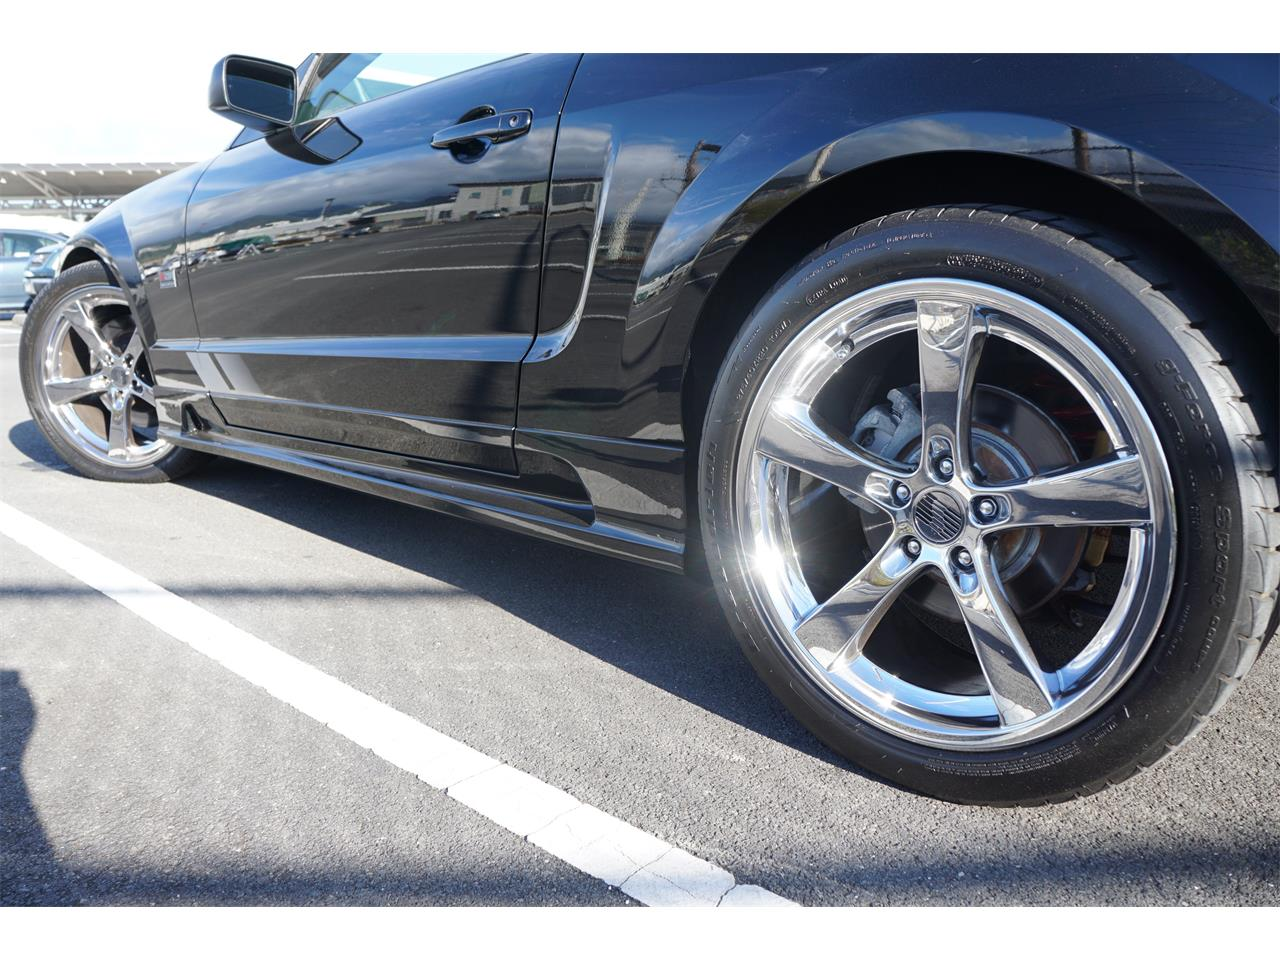 2008 Ford Mustang (Saleen) (CC-1389639) for sale in Honolulu, Hawaii